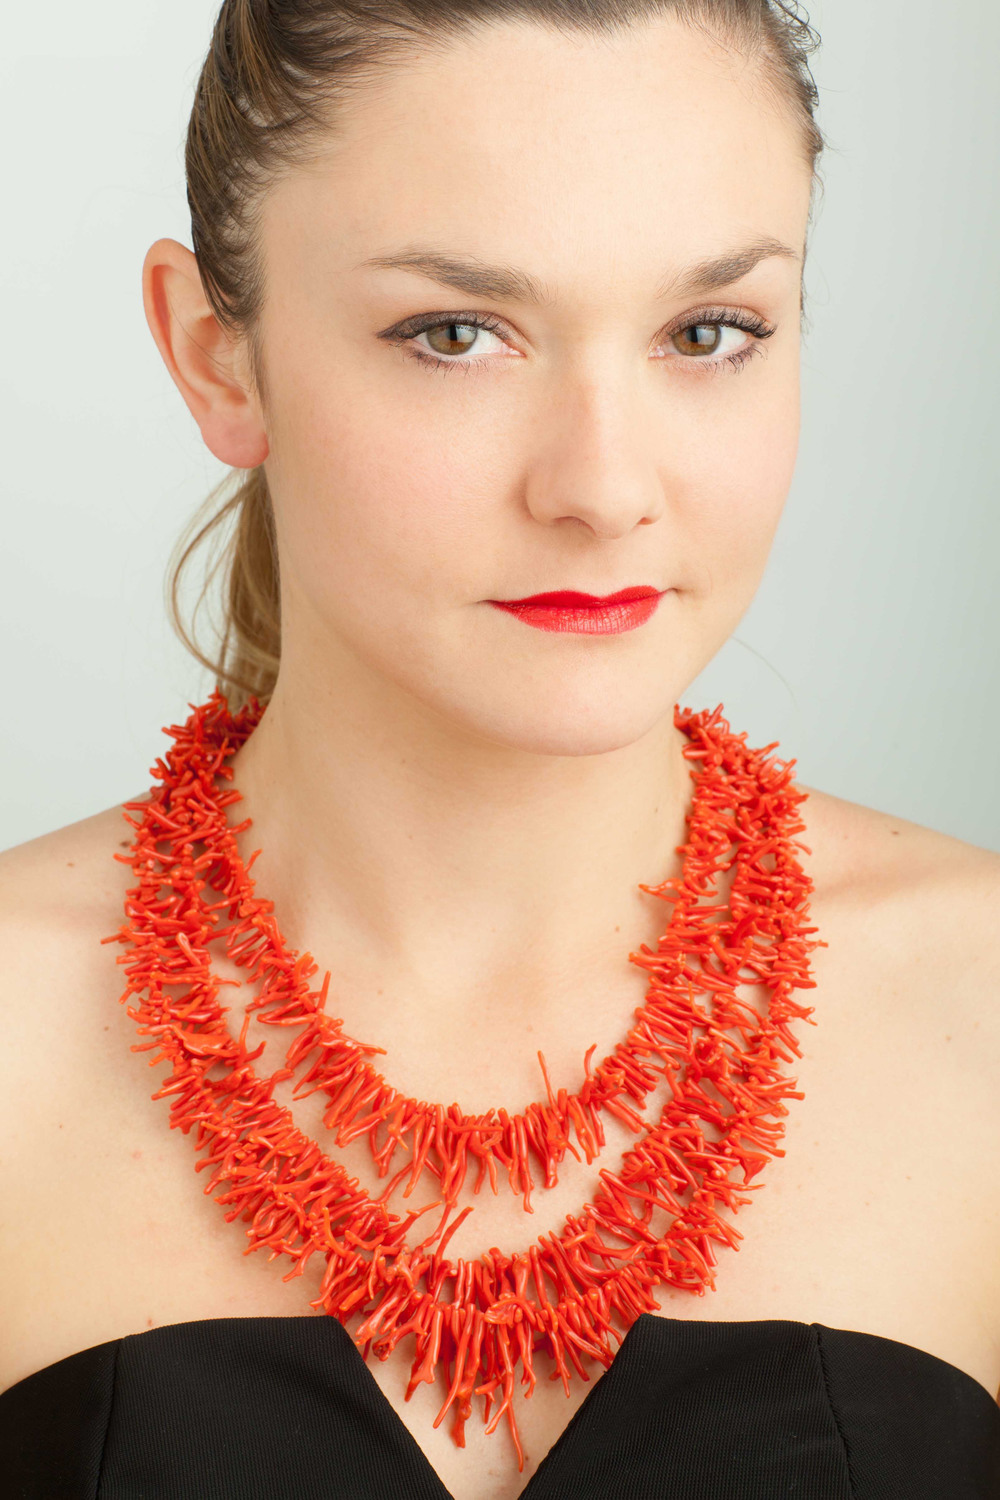 Mariagrazia is wearing one of her creations: Red Passion.